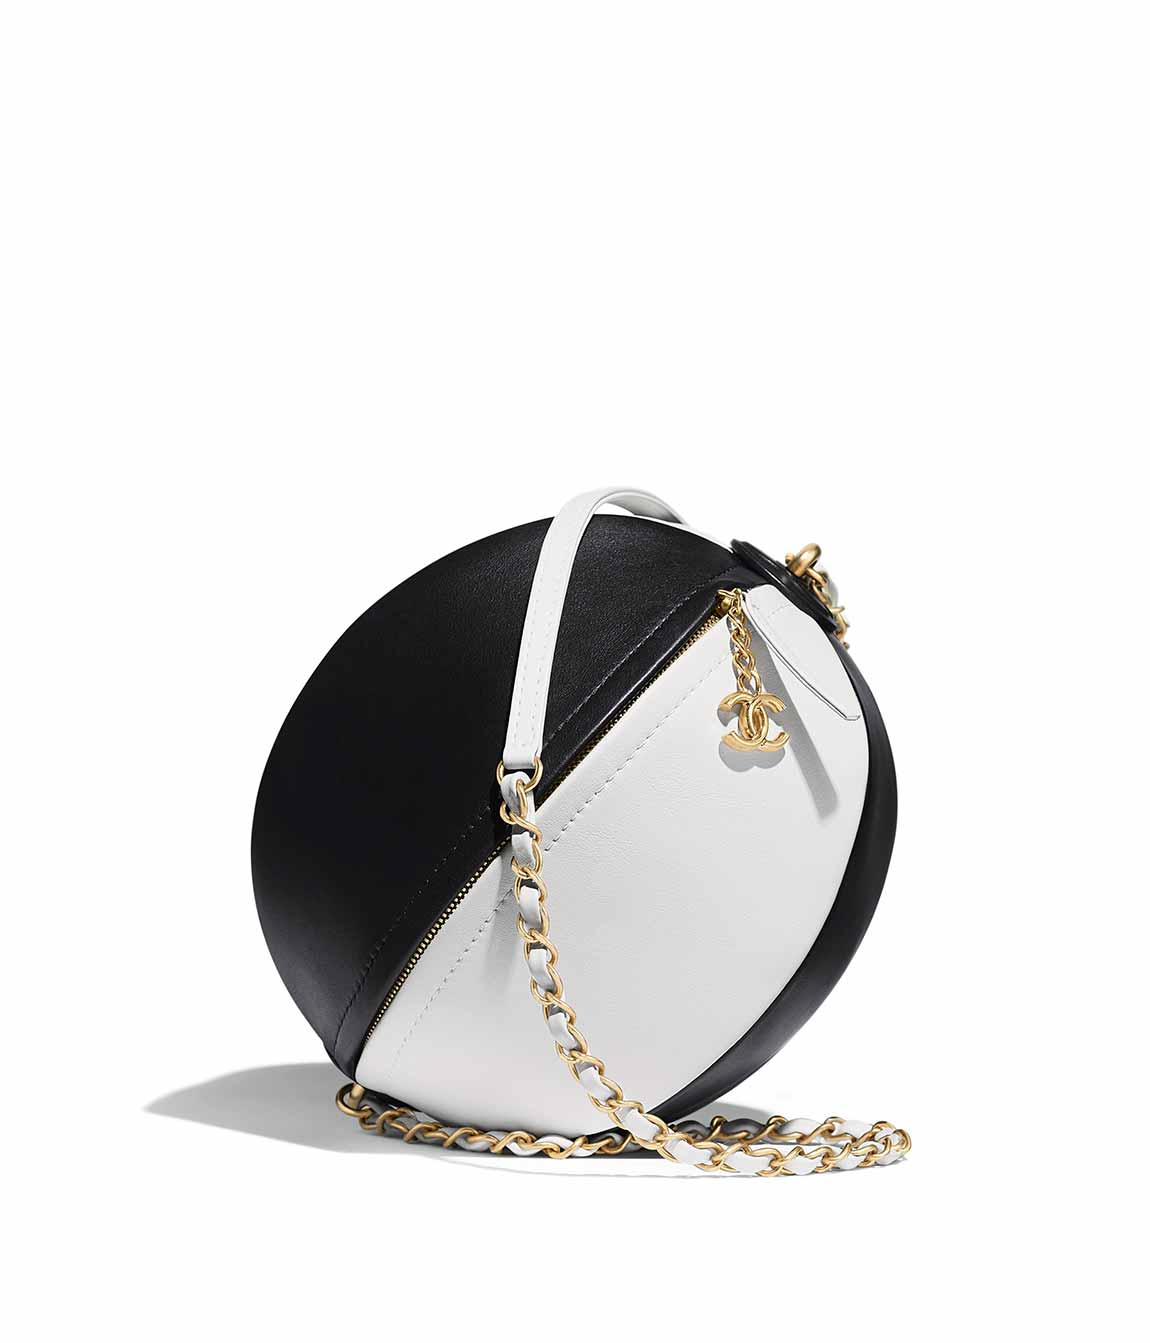 BEACH BALL HANDBAG